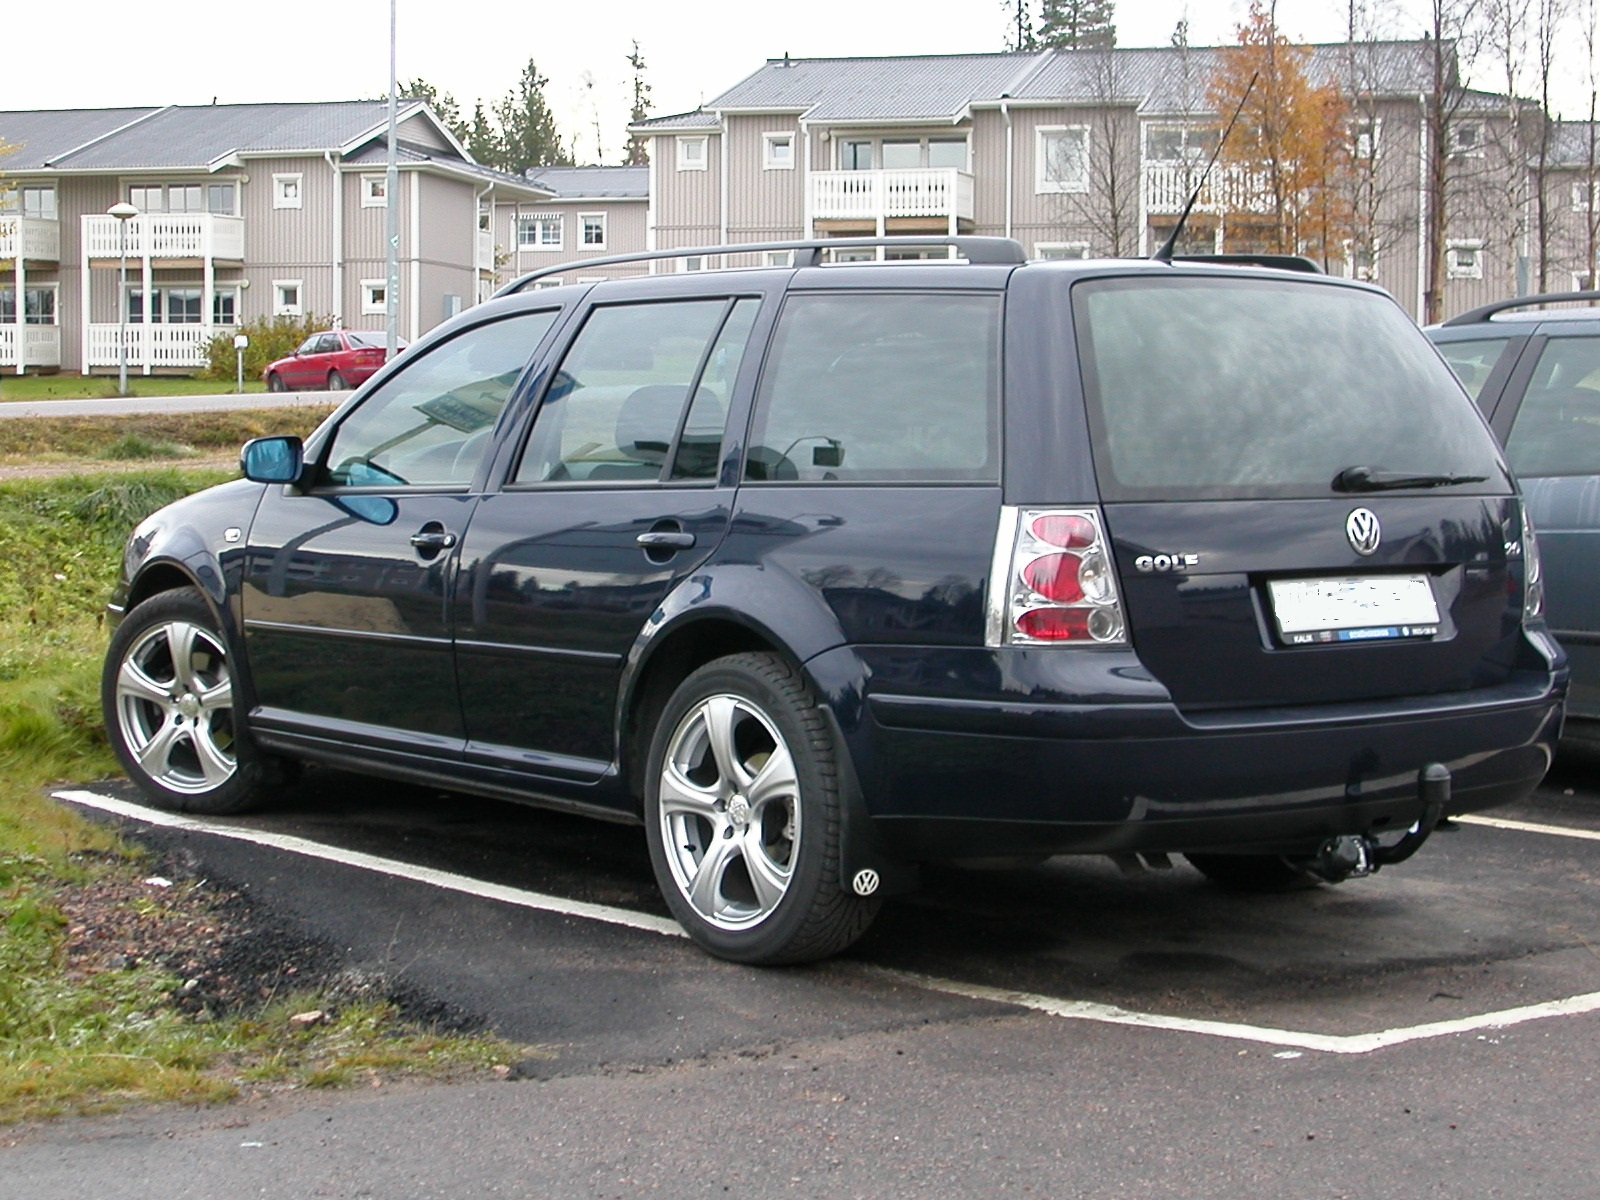 2001 Volkswagen Golf picture